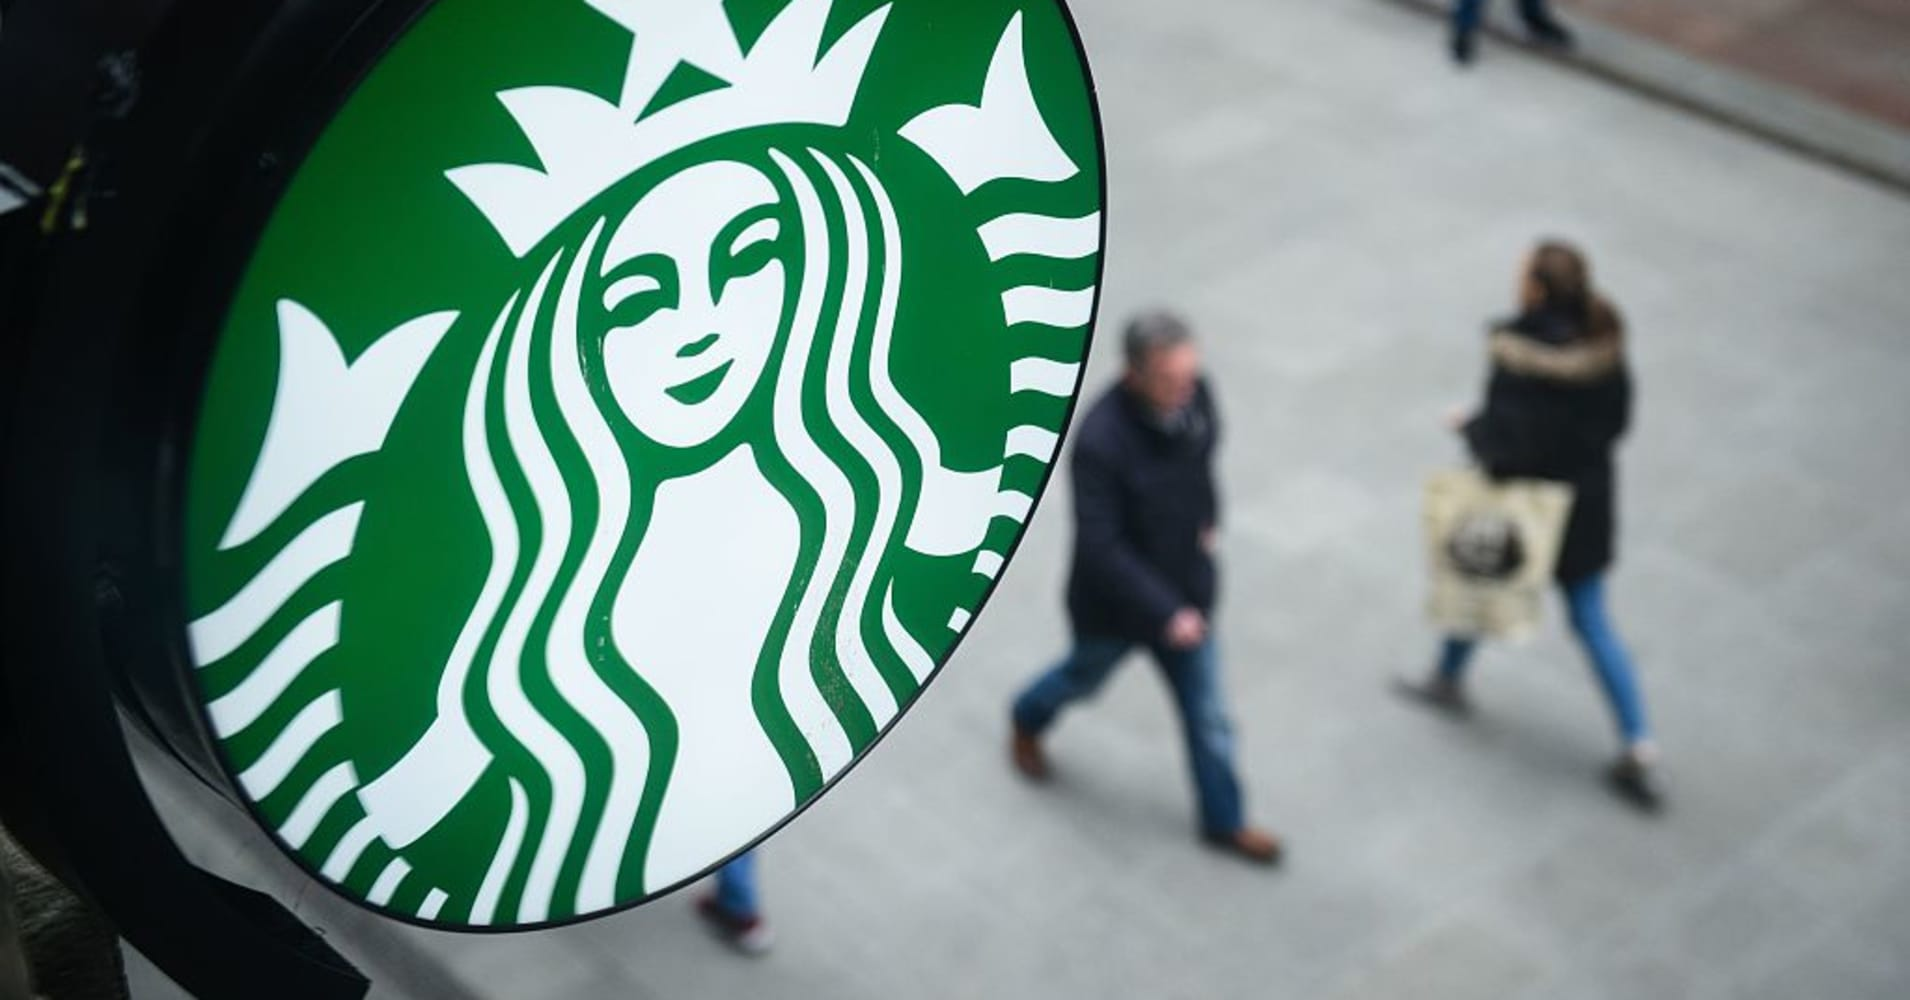 Starbucks shares crater after a poor forecast causes Wall Street analysts to bail